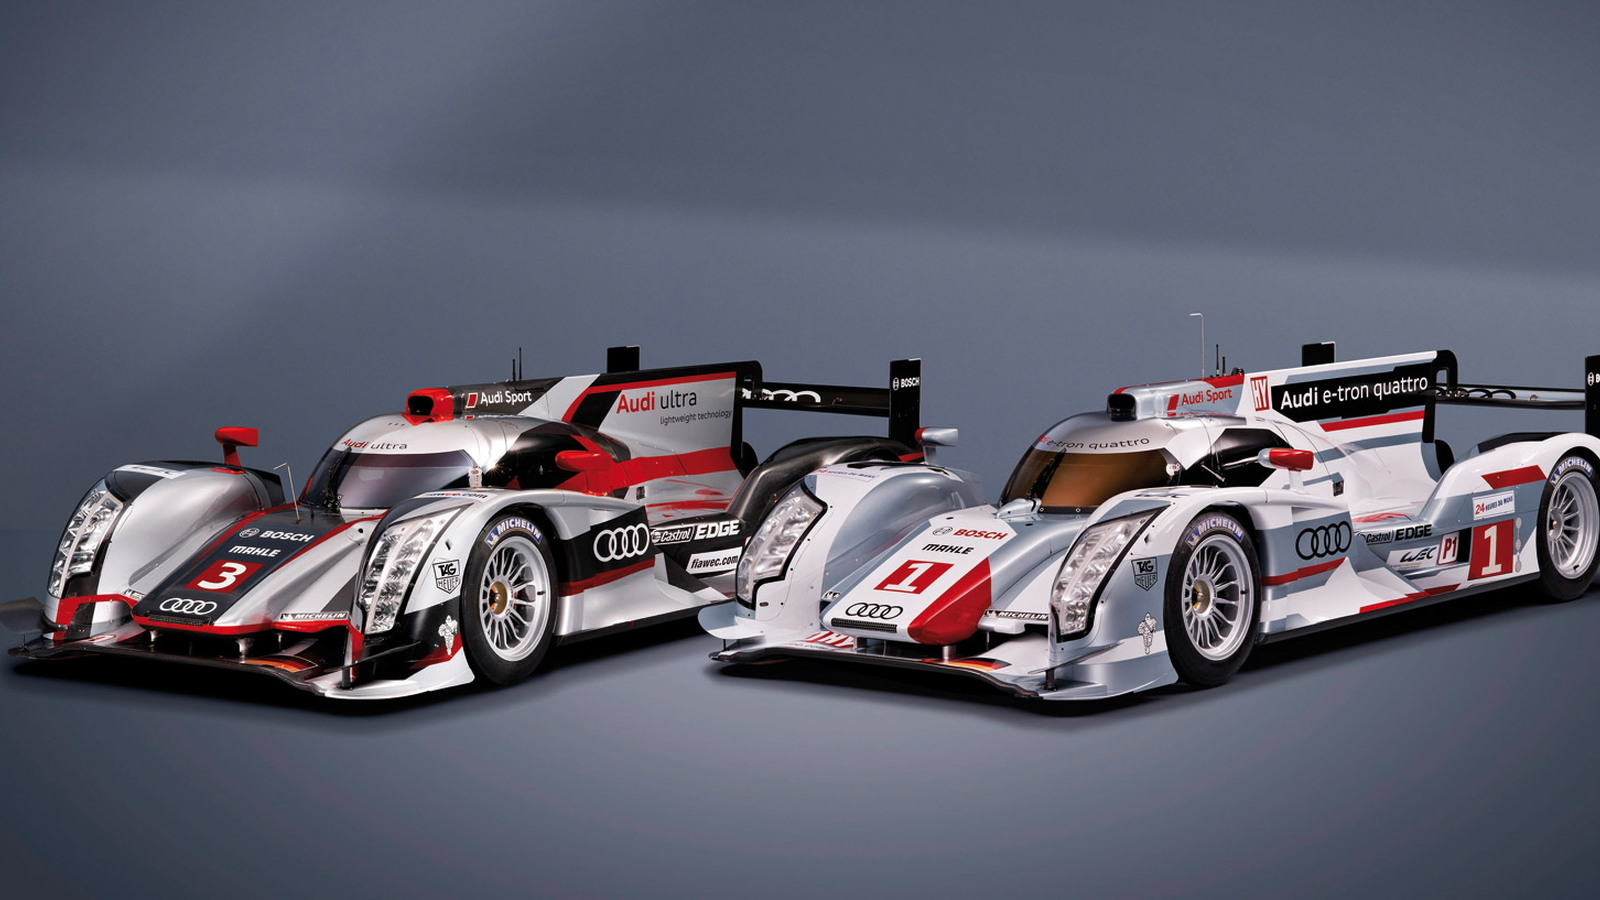 2012 Audi R18 ultra and e-tron quattro LMP1 race car